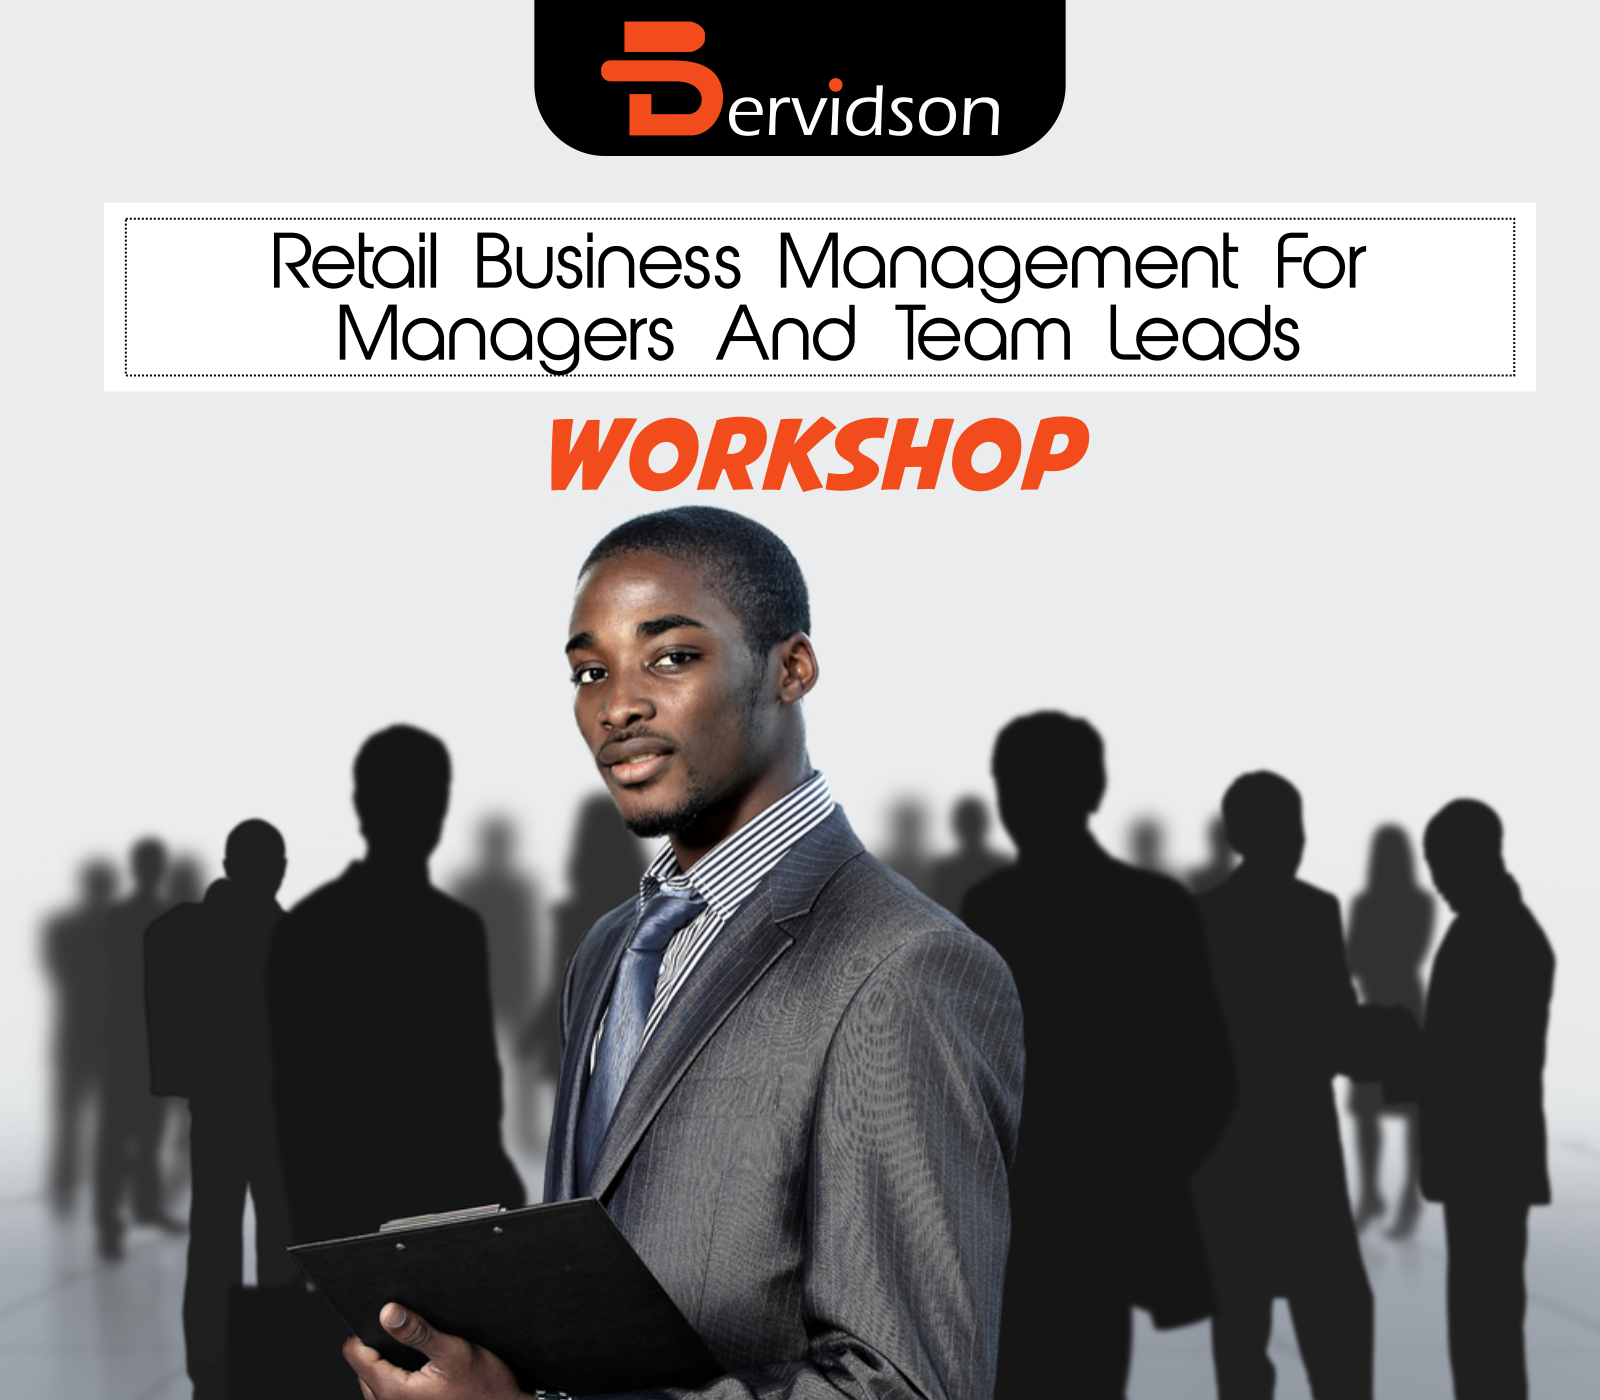 Retail Business Management Workshop for Managers & Team Leads